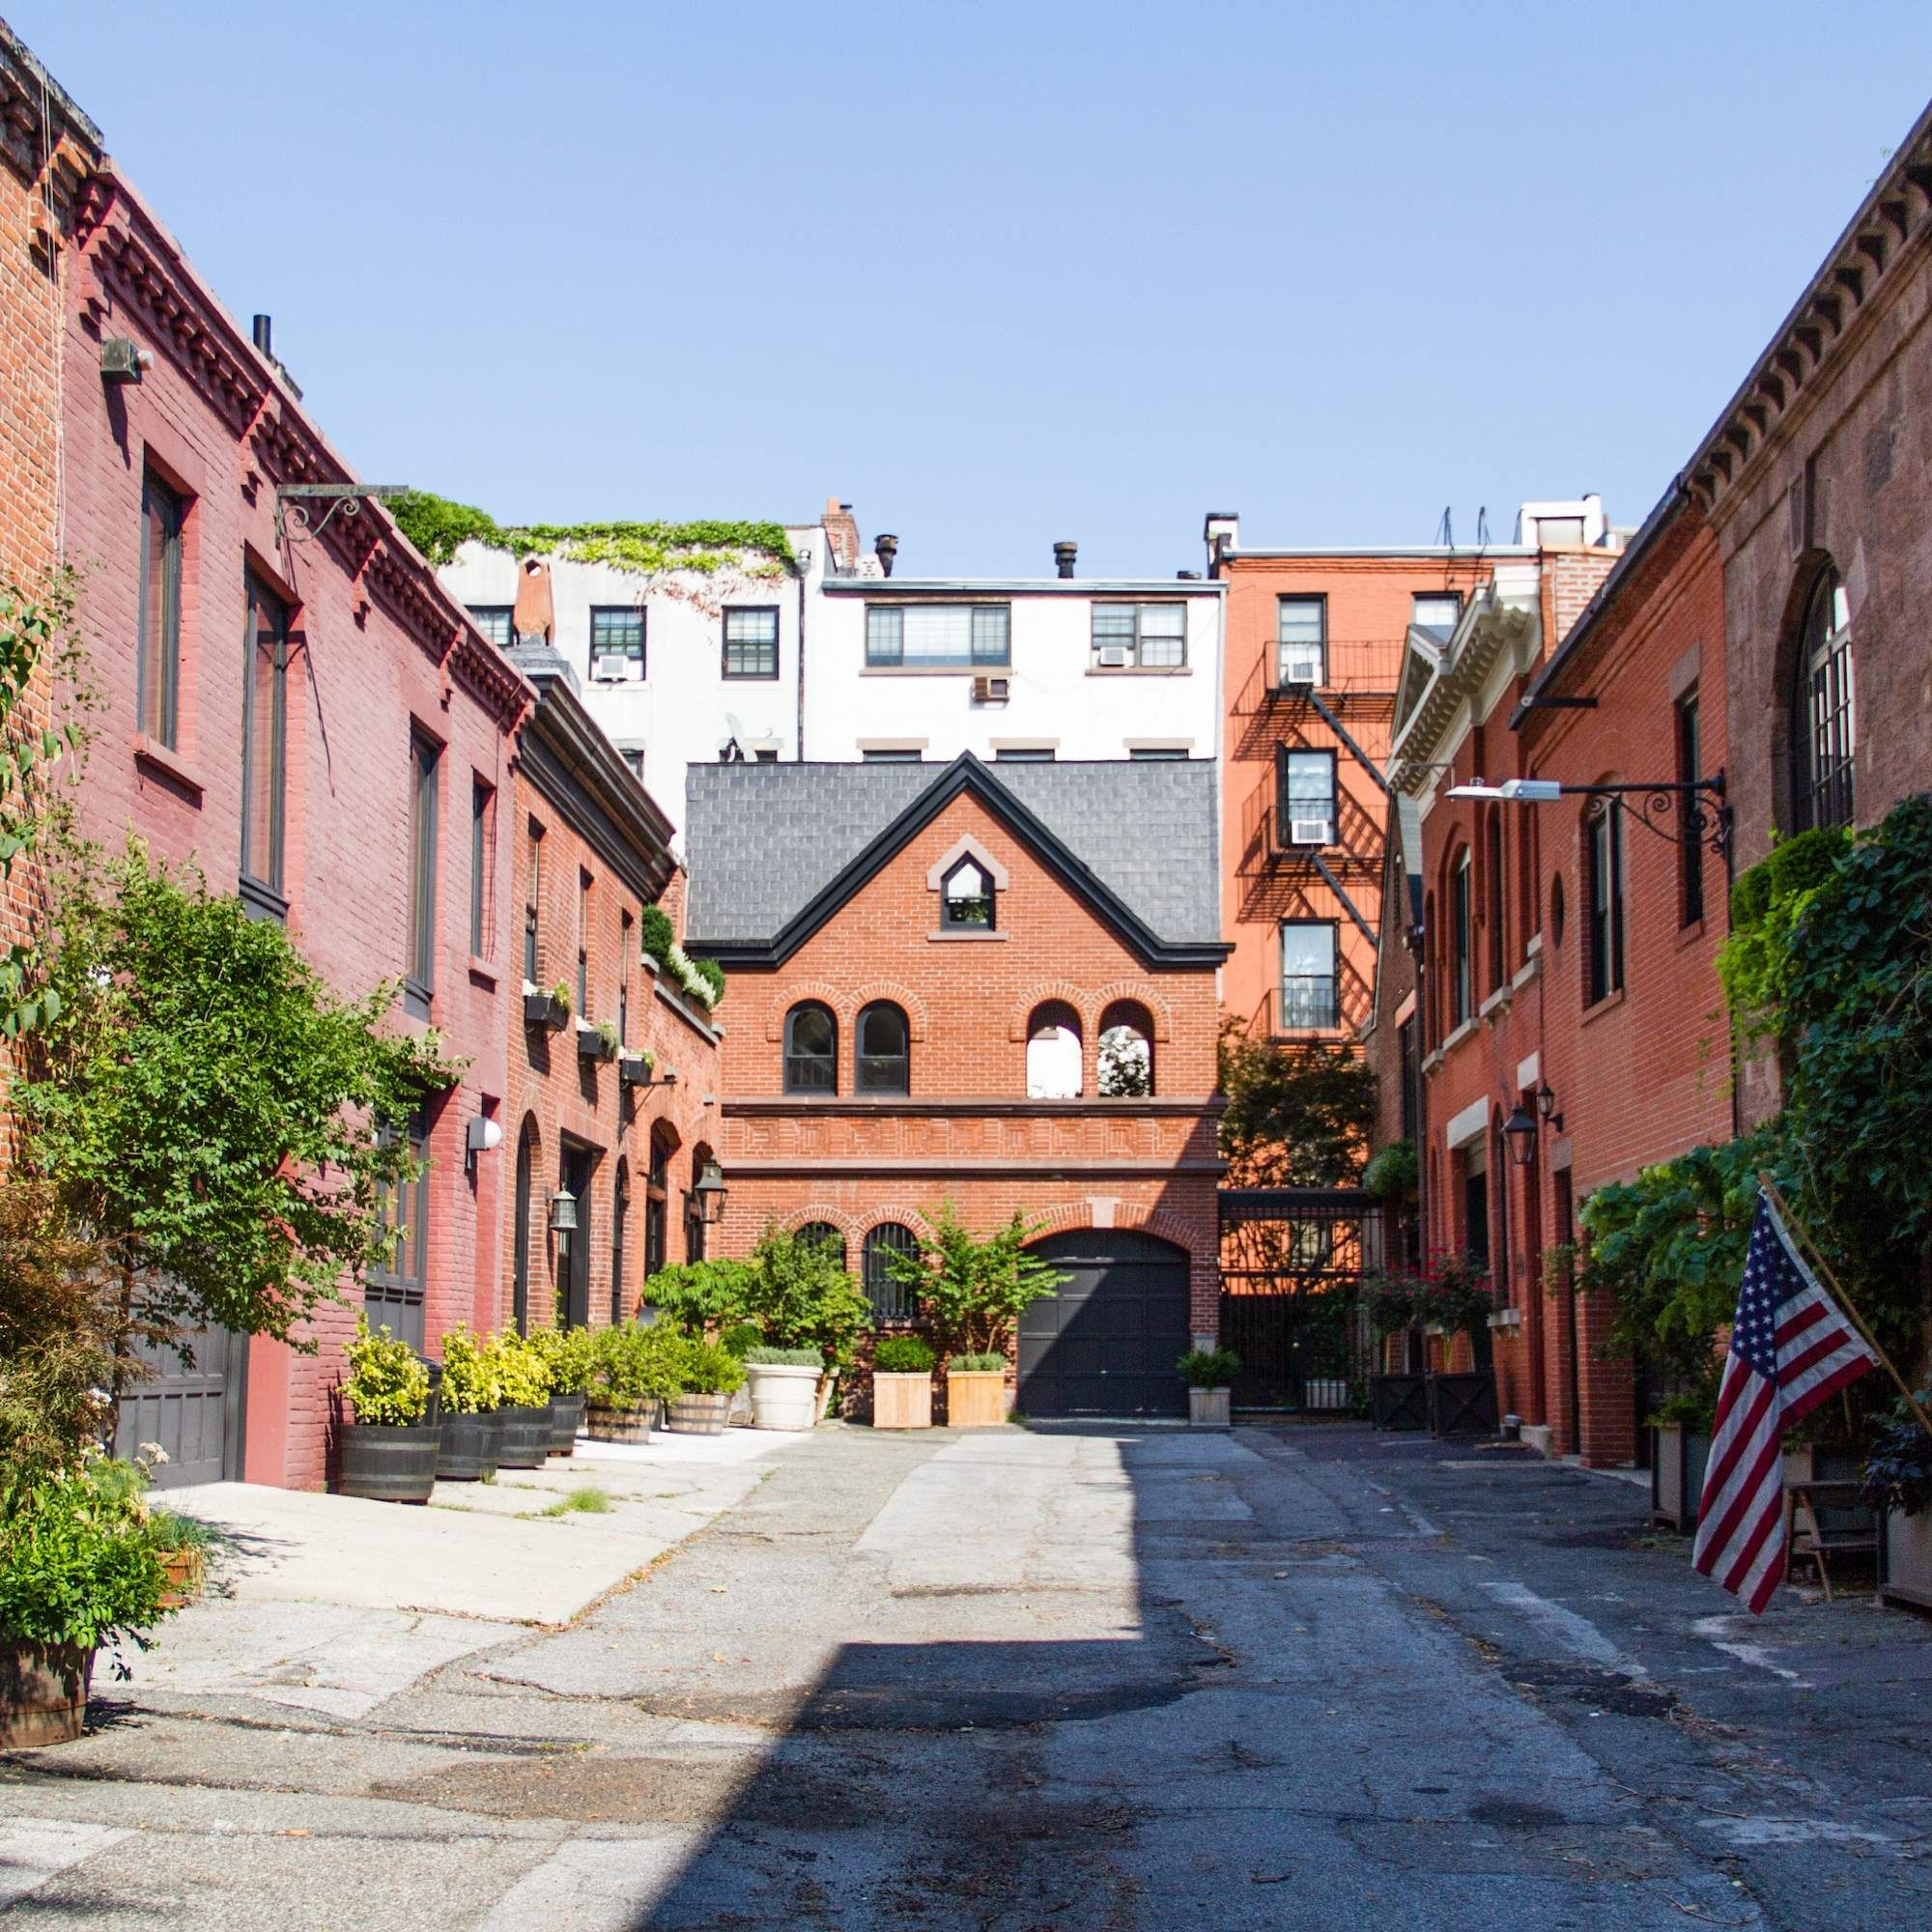 The Most Beautiful Streets In New York City New York City Vacation New York City New York City Manhattan